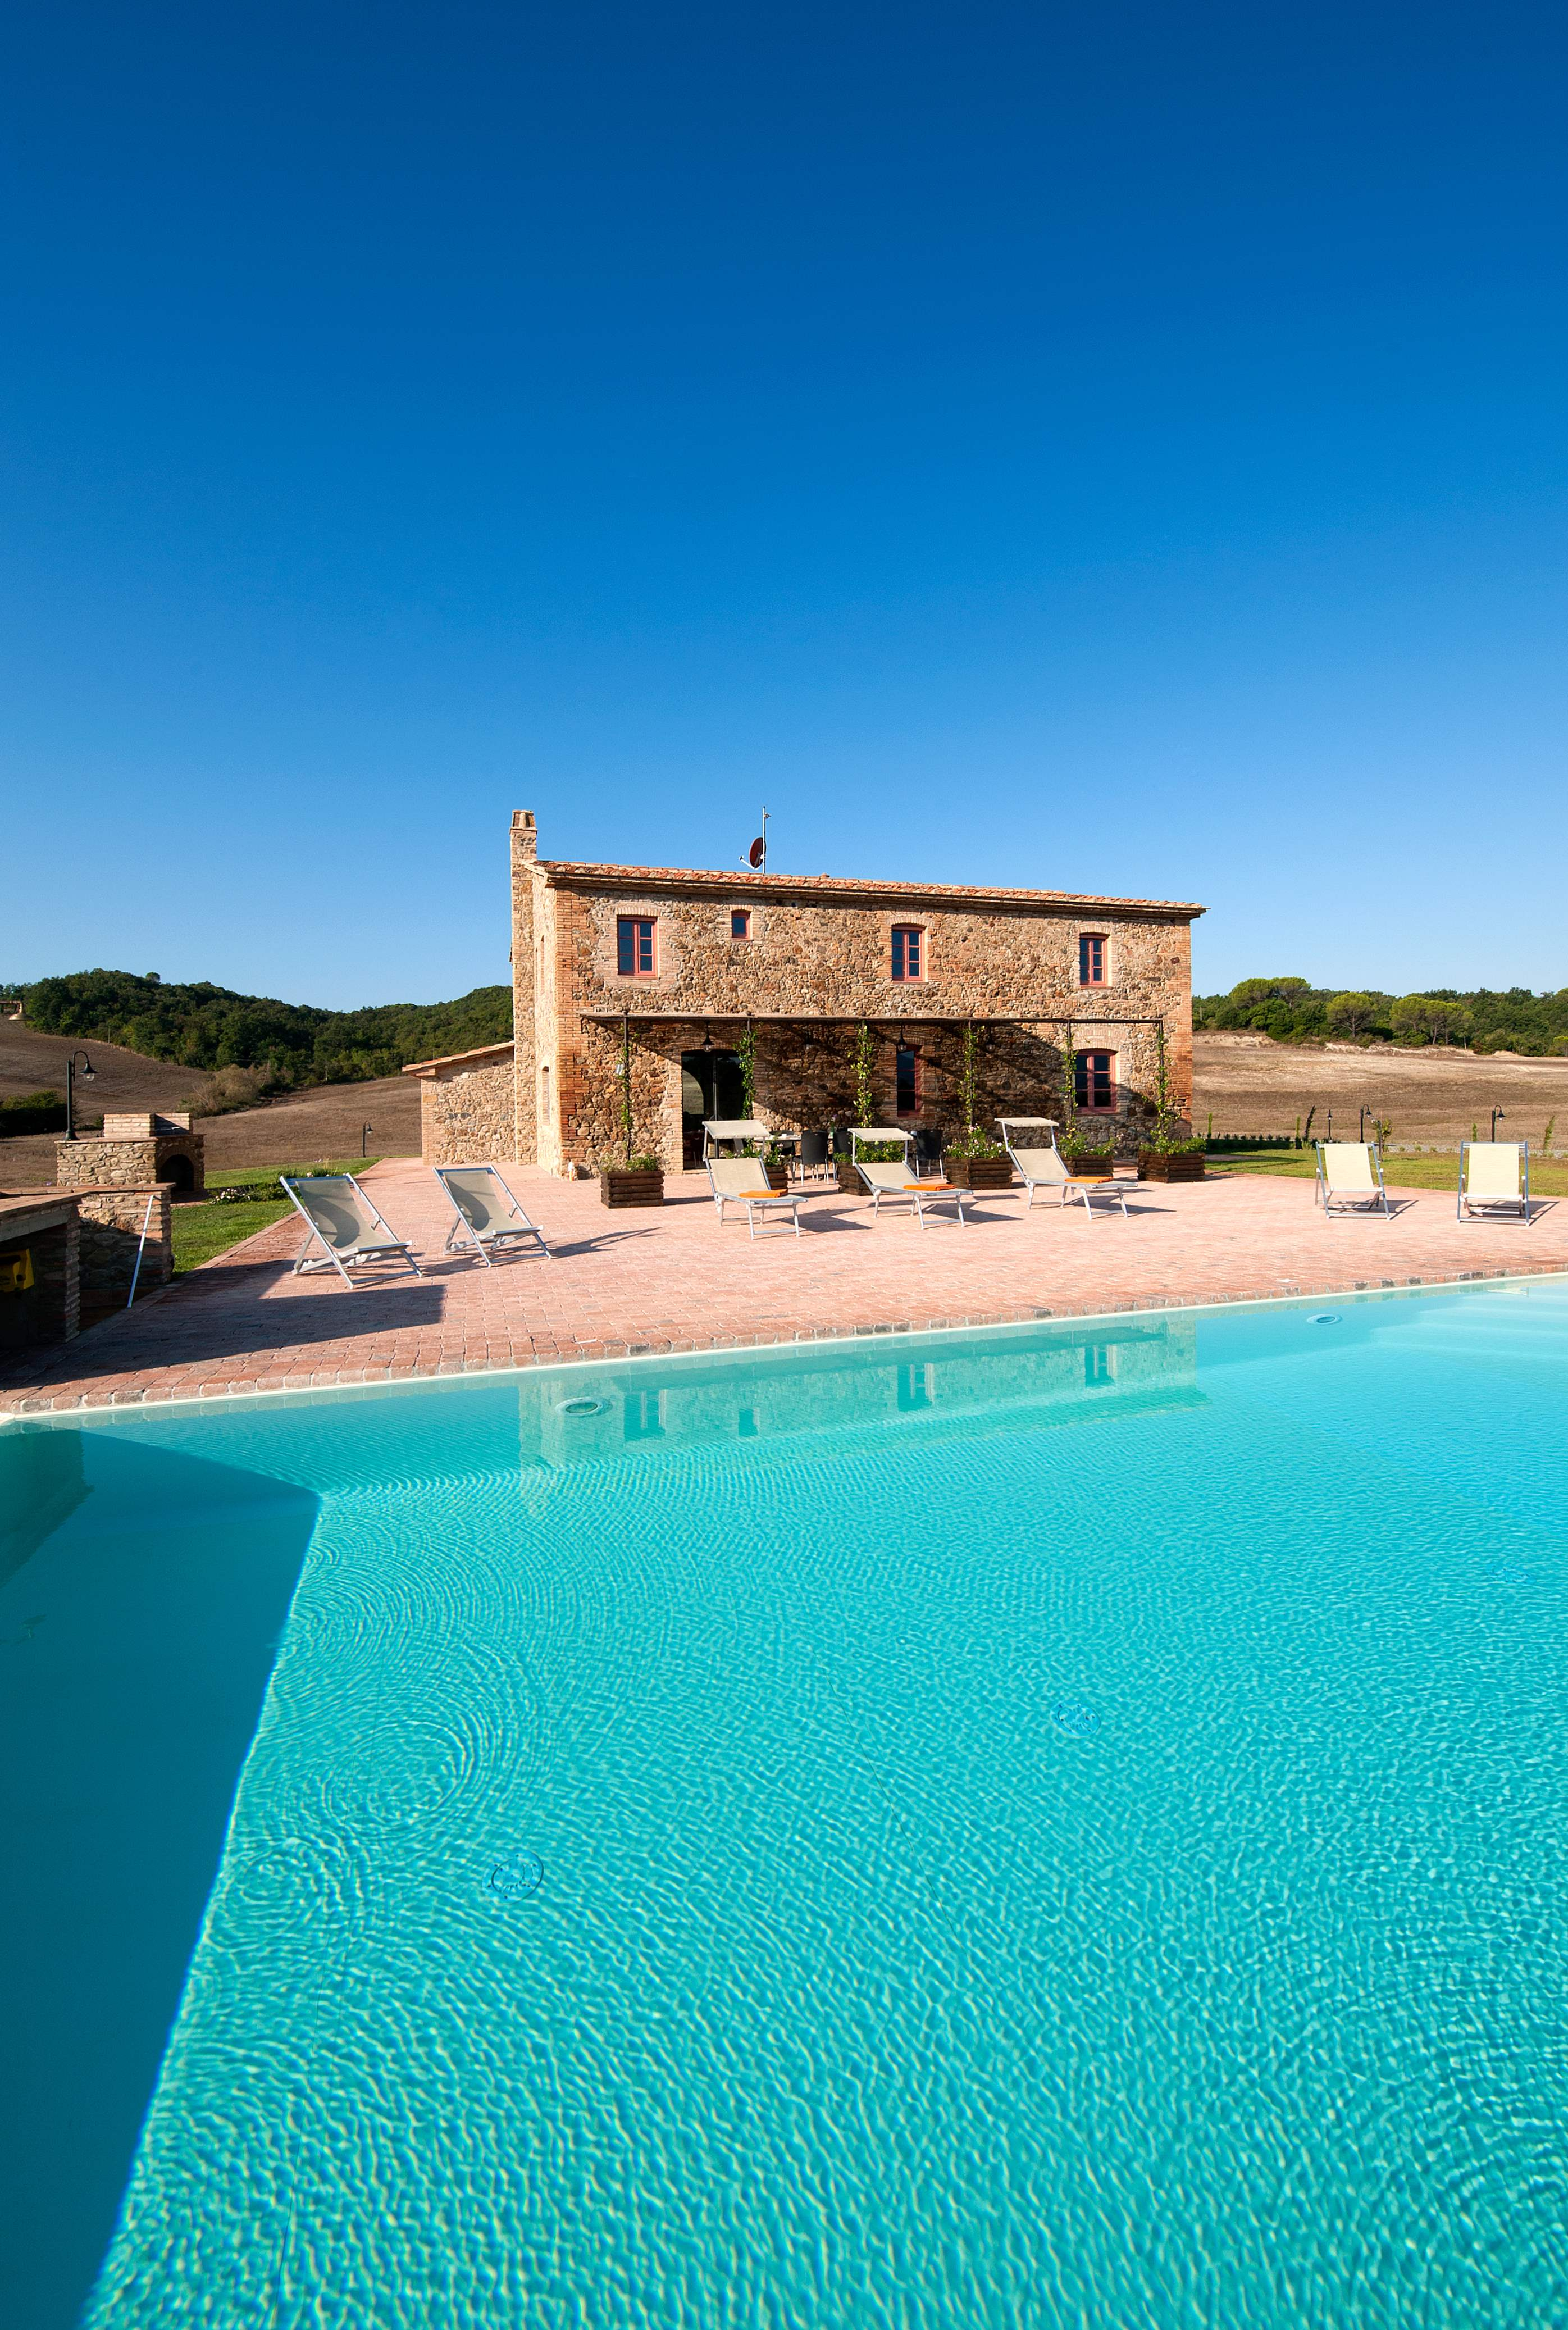 Podere I Gotti, 5 bedroom villa in Tuscany Coast, Tuscany Photo #22